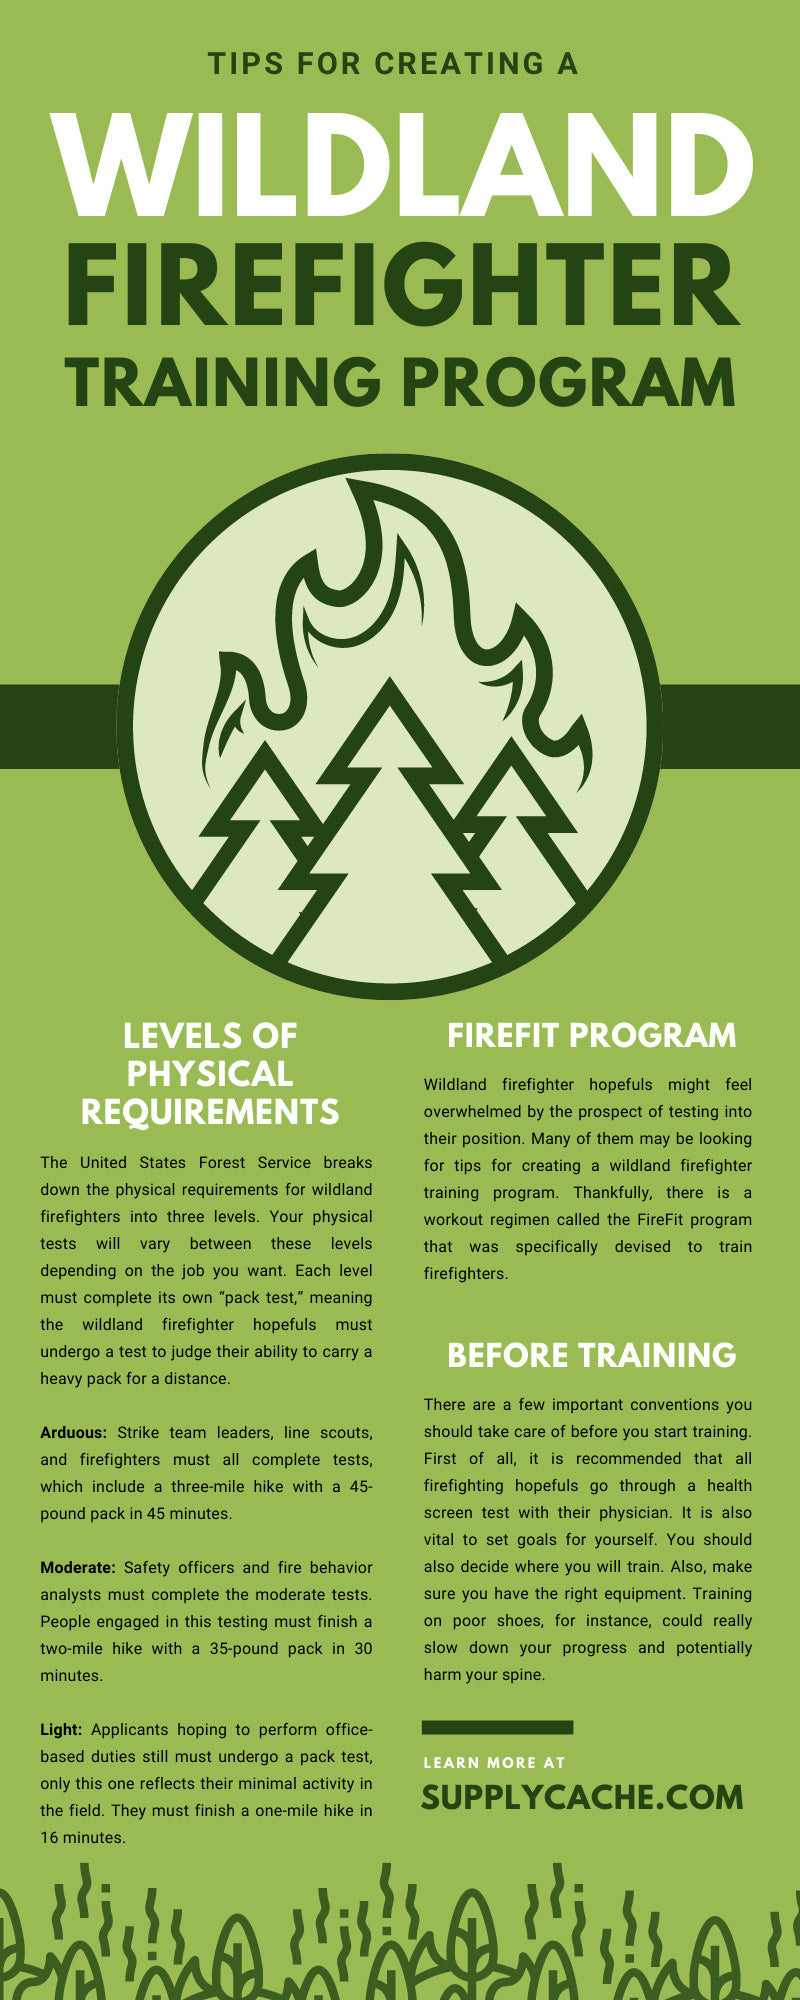 Tips for Creating a Wildland Firefighter Training Program